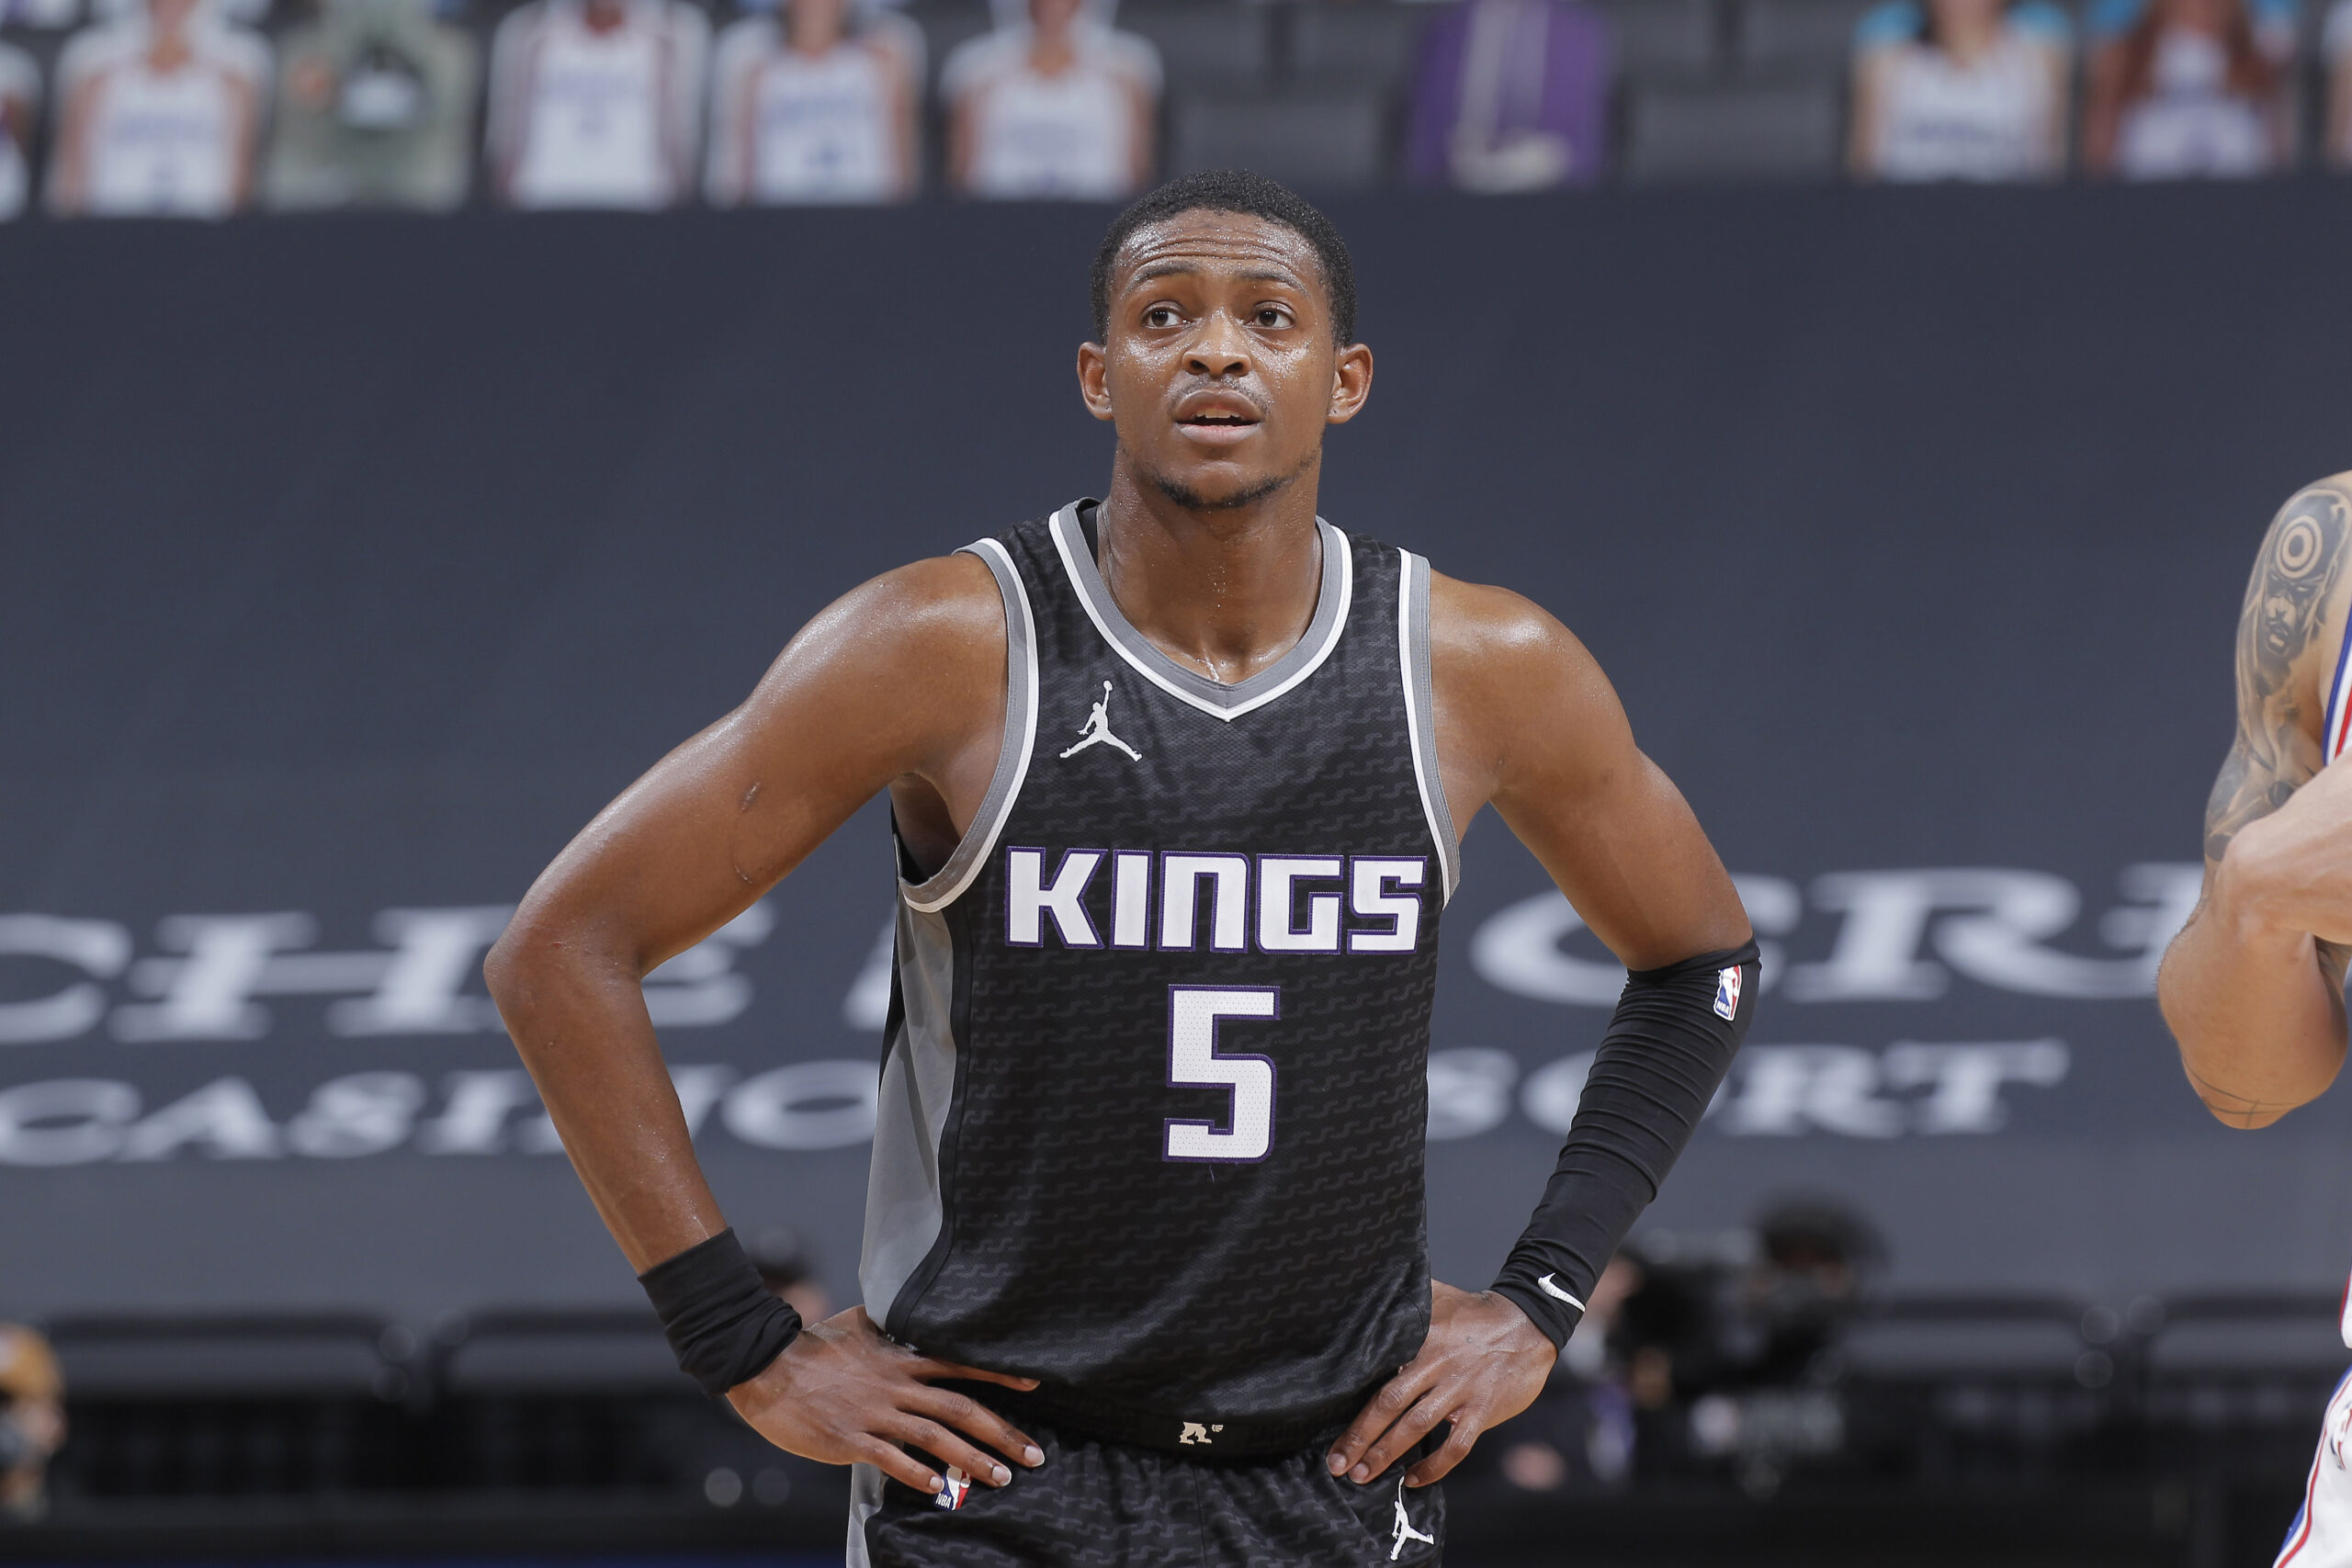 Kings guard De'Aaron Fox fined $20K